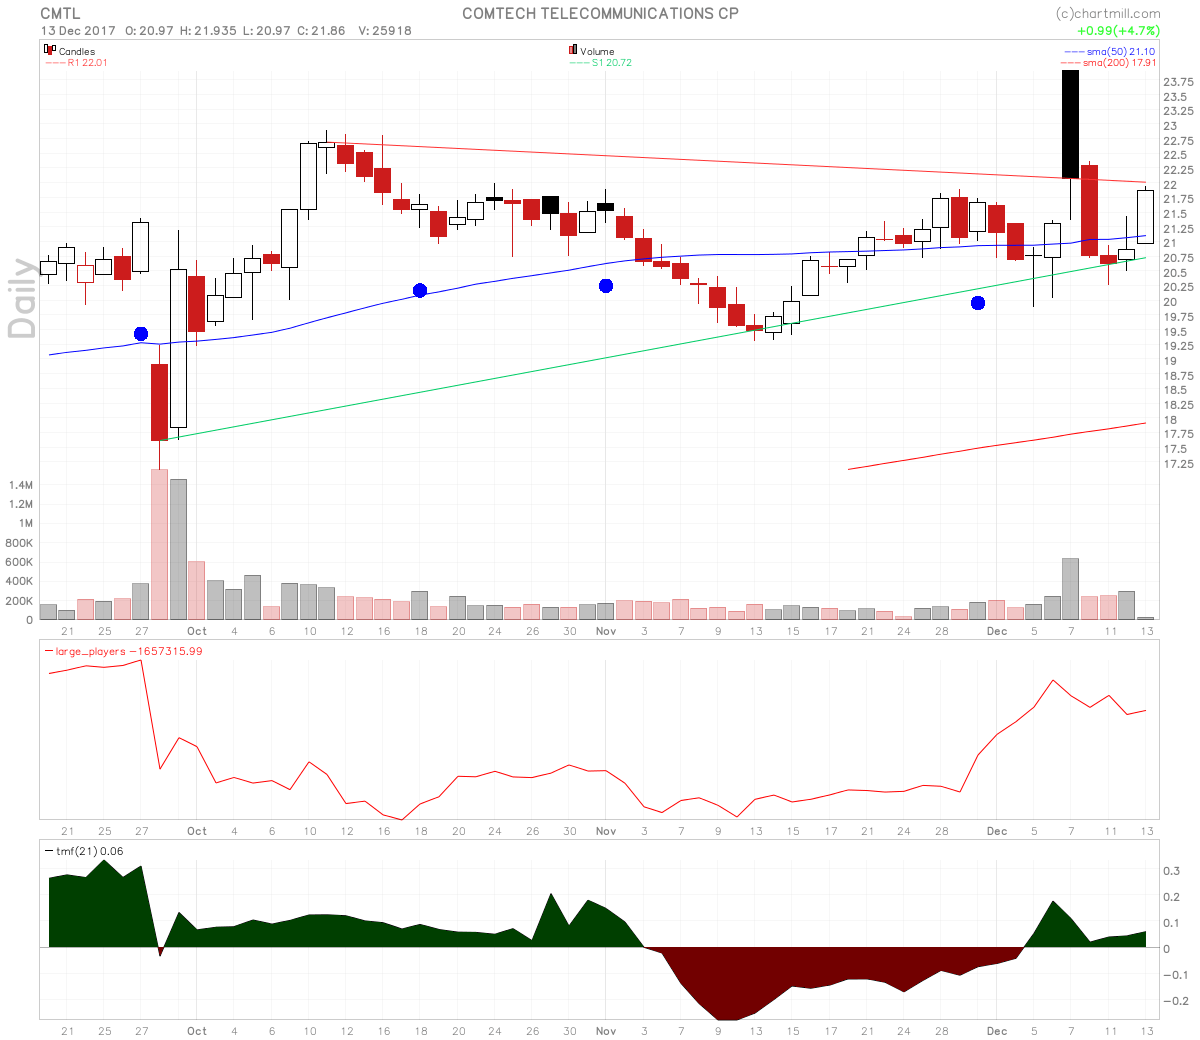 Comtech Telecommunications Stock Does Candle Over Candle Off Trend Line